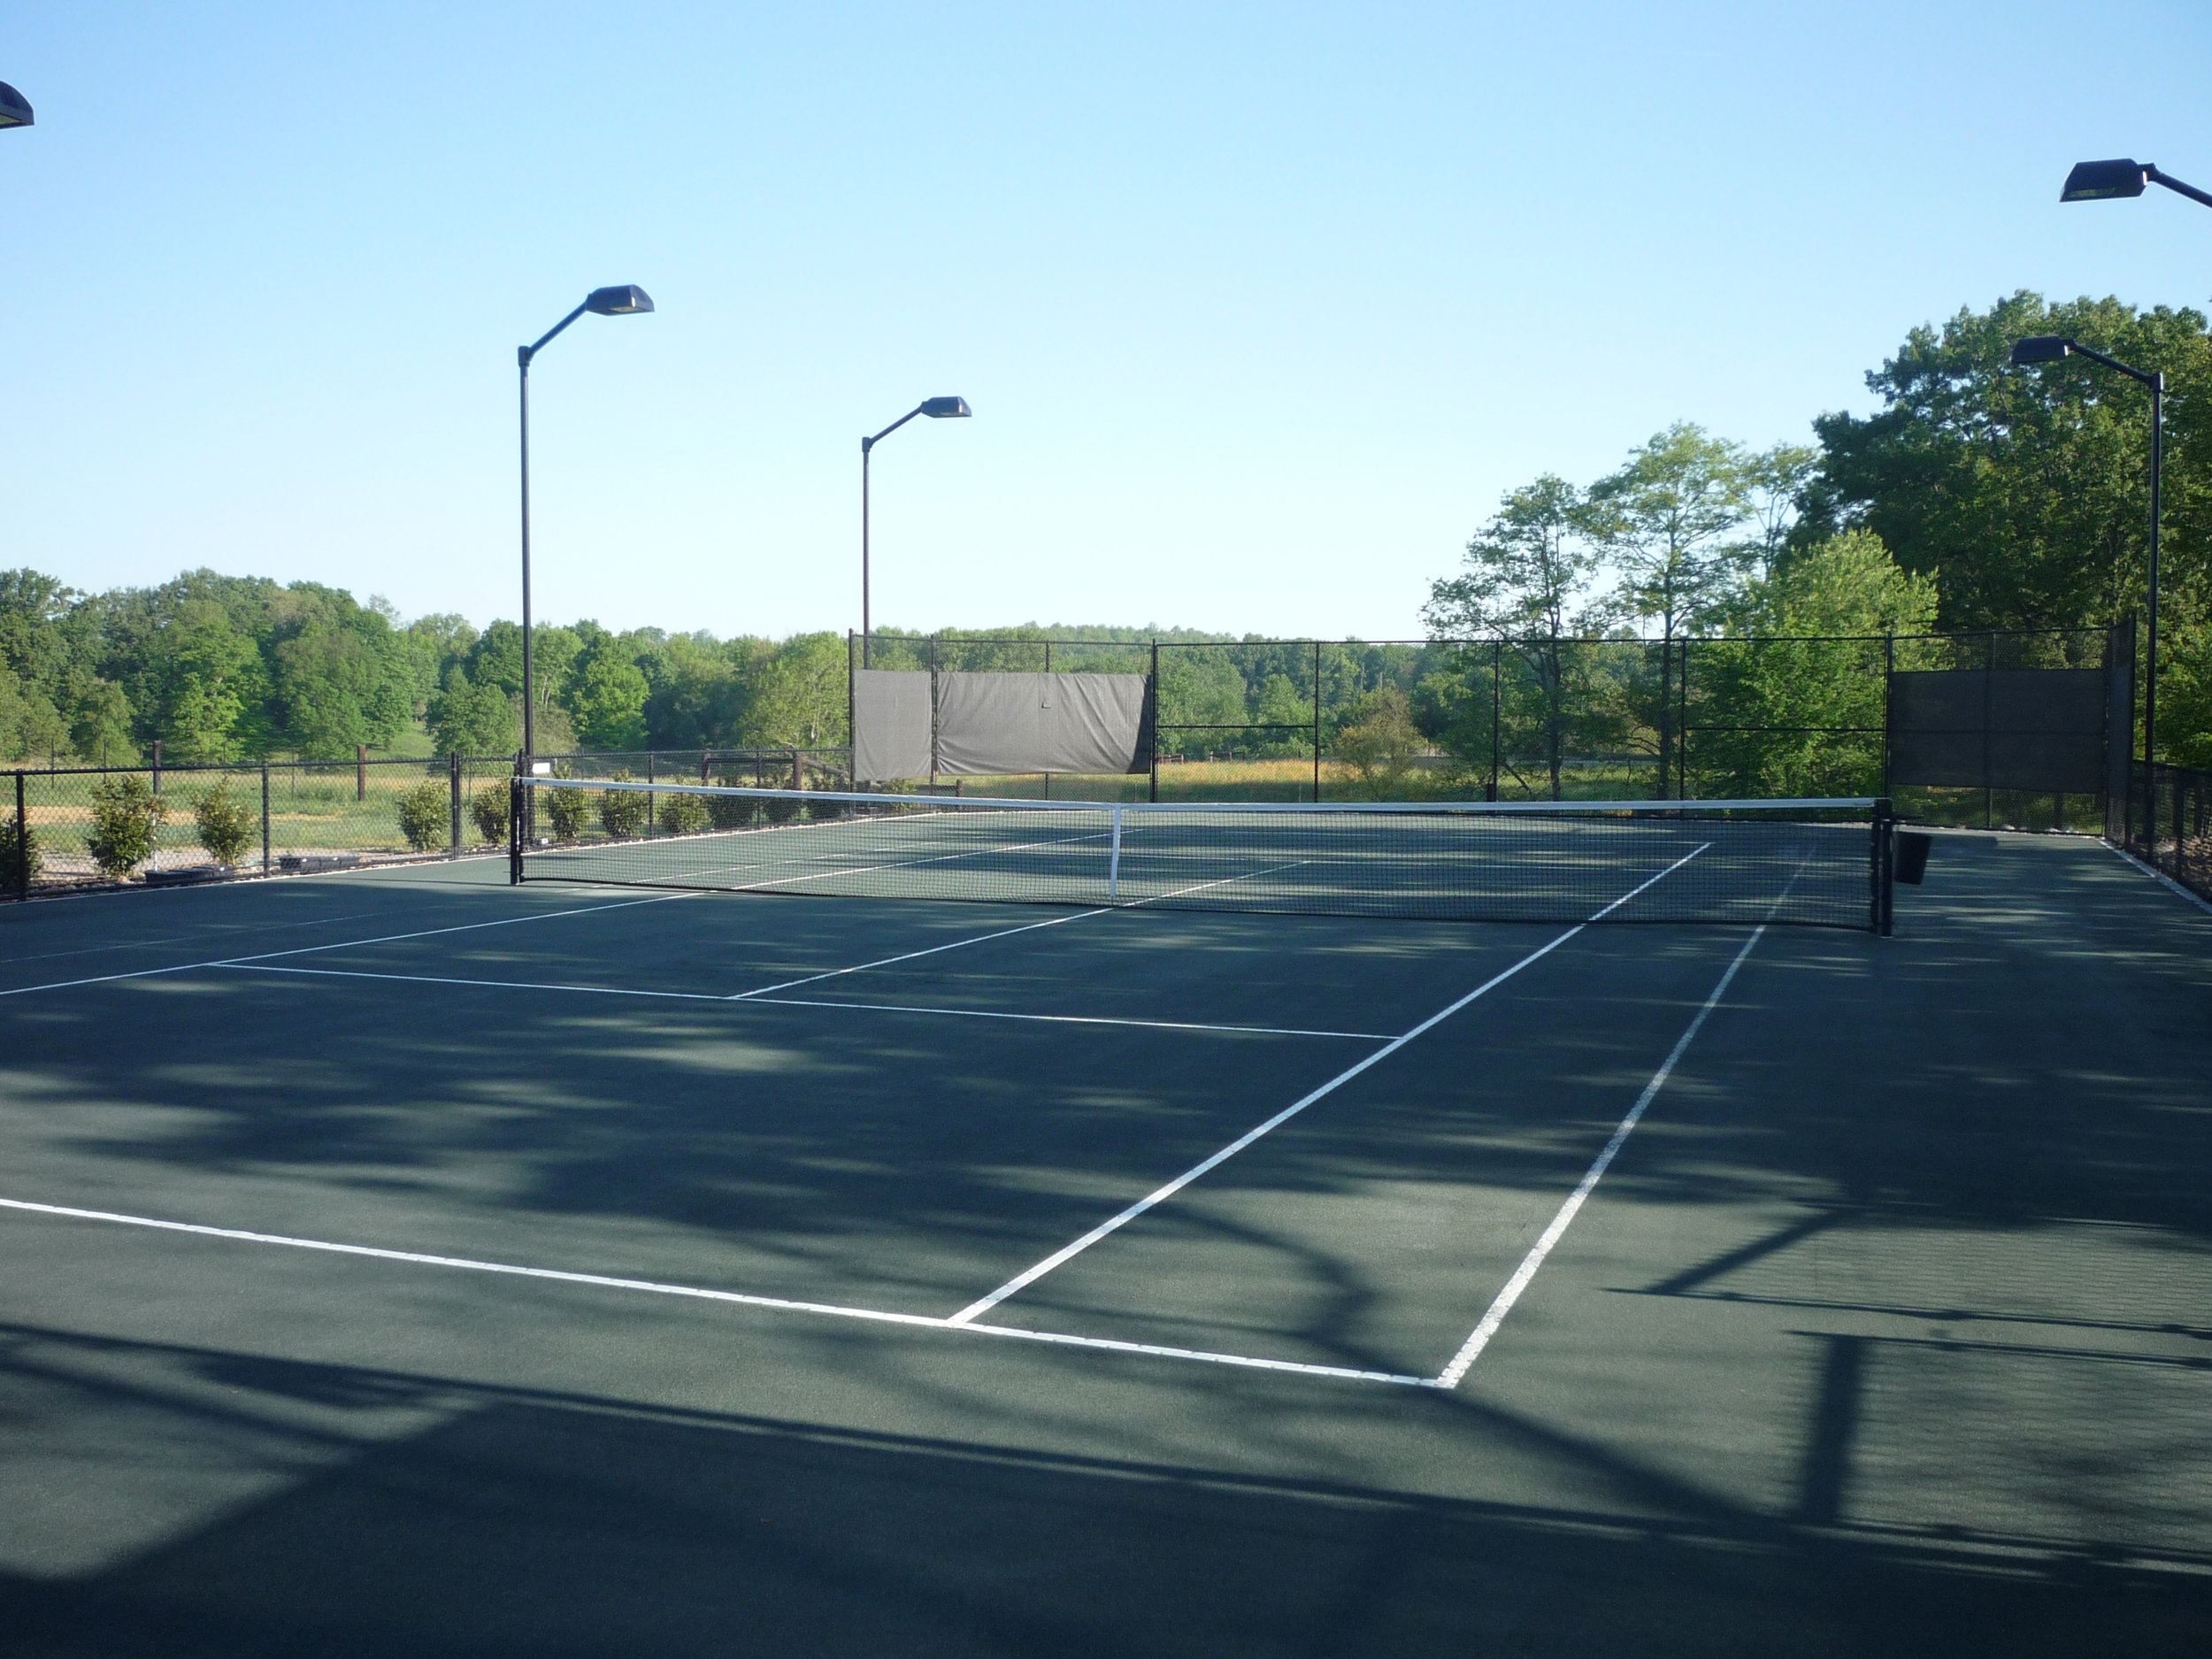 Distinguished Residential Tennis Facility in 2014.New construction of a private residence in Tennessee using a sub-irrigated clay court system with fencing, curbing, court lighting and playing lines. -